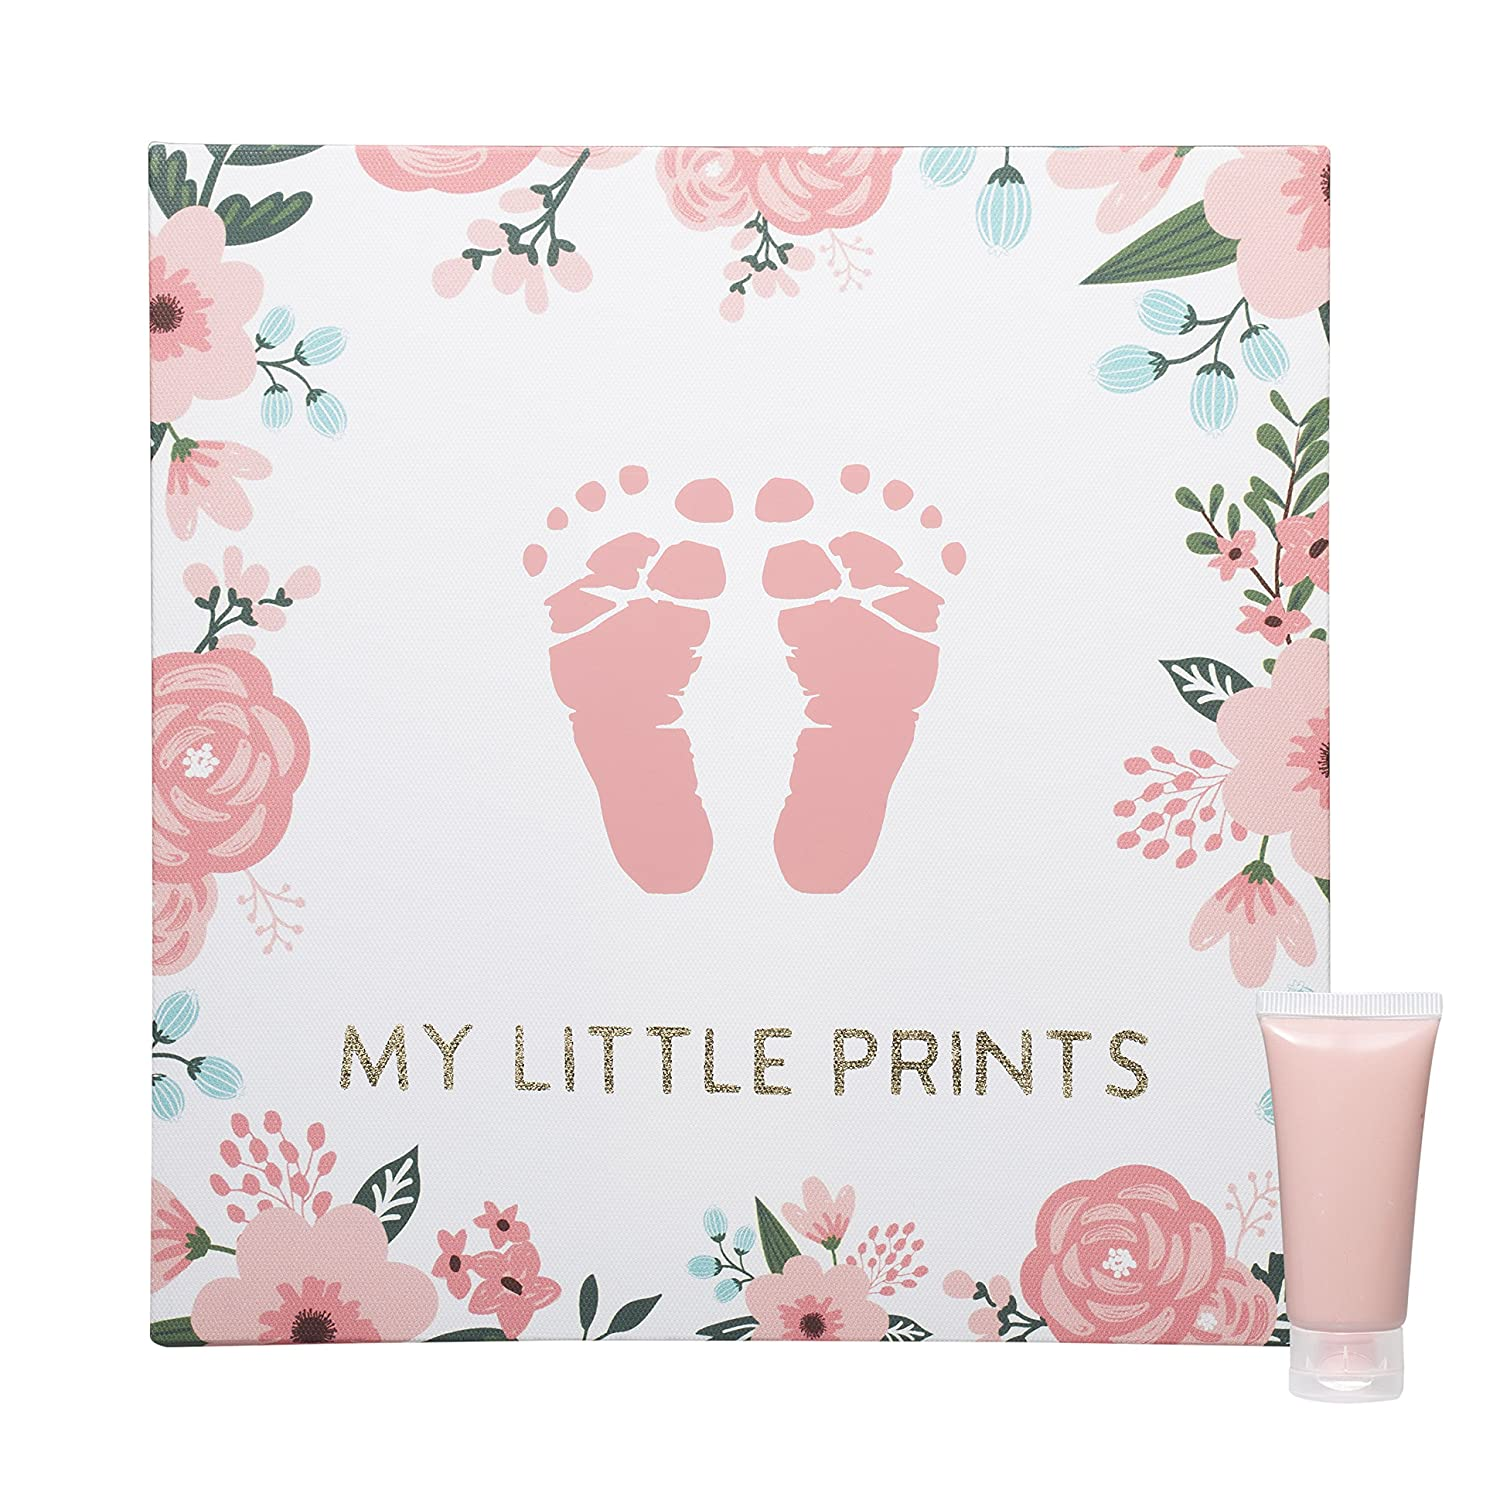 Pink Floral Pearhead Babyprints Baby Handprint or Footprint Keepsake Wall Canvas and Paint Kit